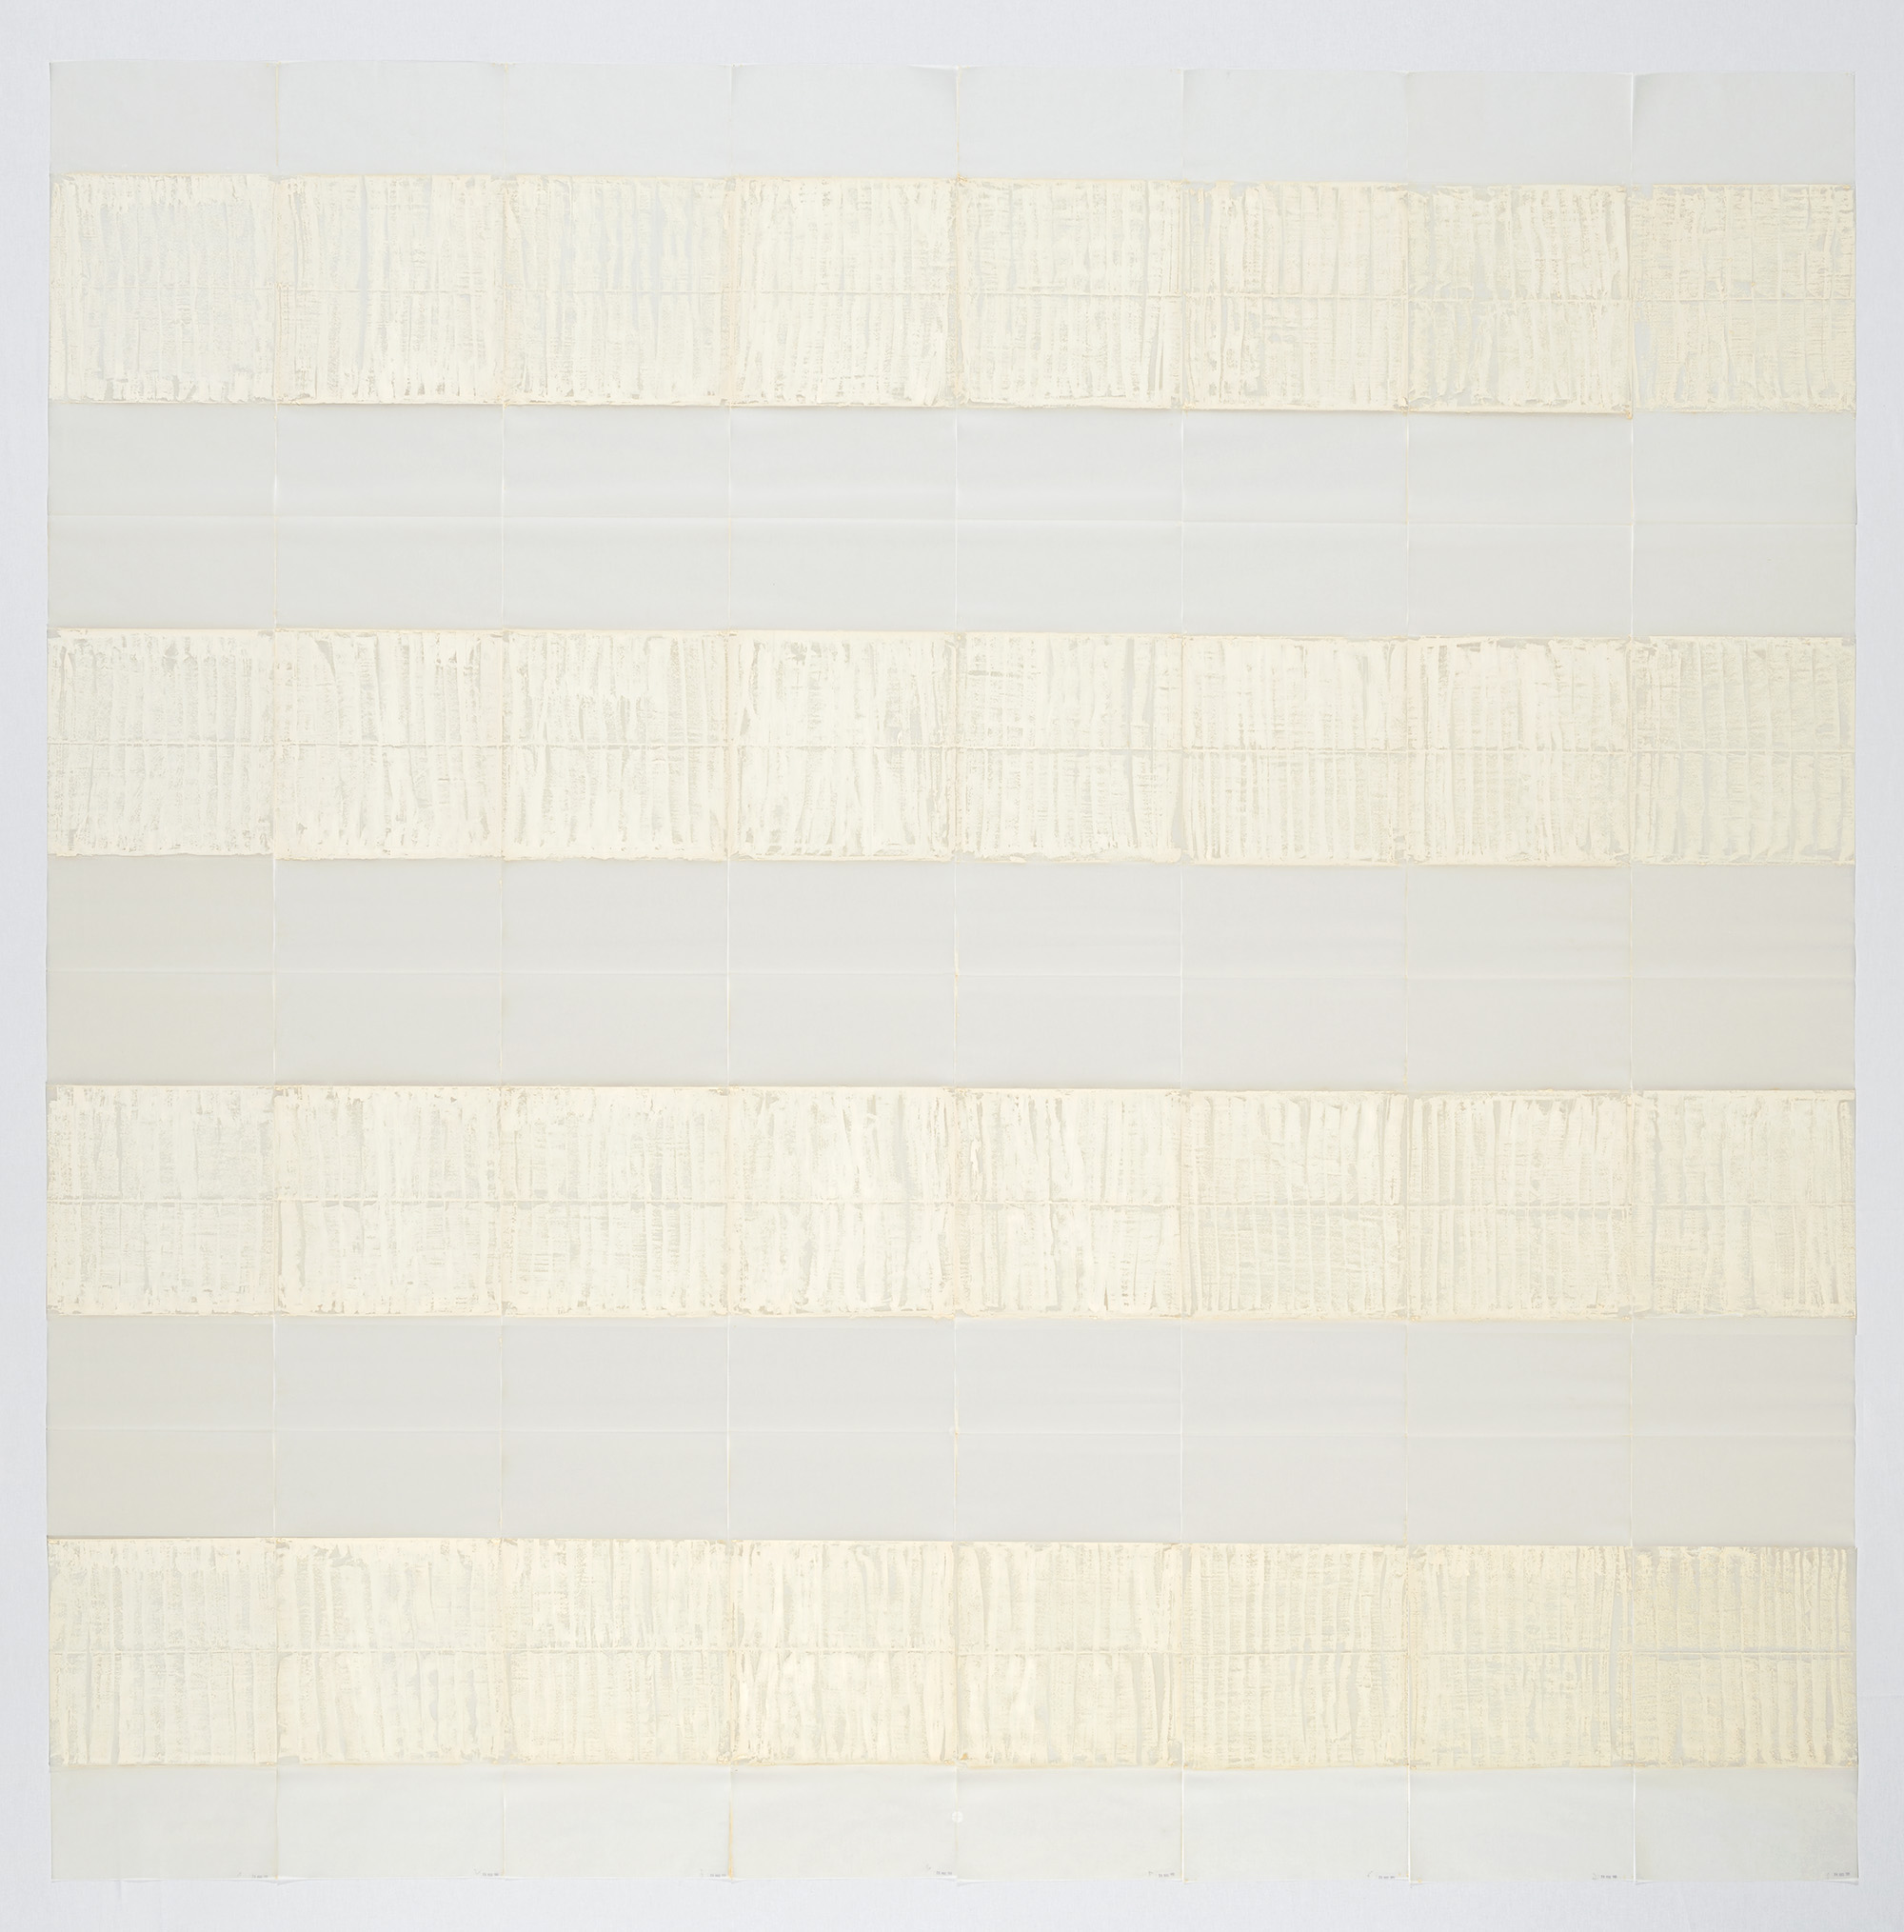 Michel Parmentier, <i>26 mars 1991</i>, 1991. Oil bar blanc applied flat, vertically, on tracing paper, 7 alternating horizontal bands, 38 cm wide (4+3) and, at the top and the bottom, 2 partial unpainted bands of 19 cm. 304 x 300 cm. Eli and Edythe Broad Art Museum, Michigan State University, Purchase. © ADAGP, Paris. The Estate of Michel Parmentier. AMP - Fonds Michel Parmentier, Bruxelles. Courtesy Galerie Loevenbruck, Paris. Photo: Philippe de Gobert